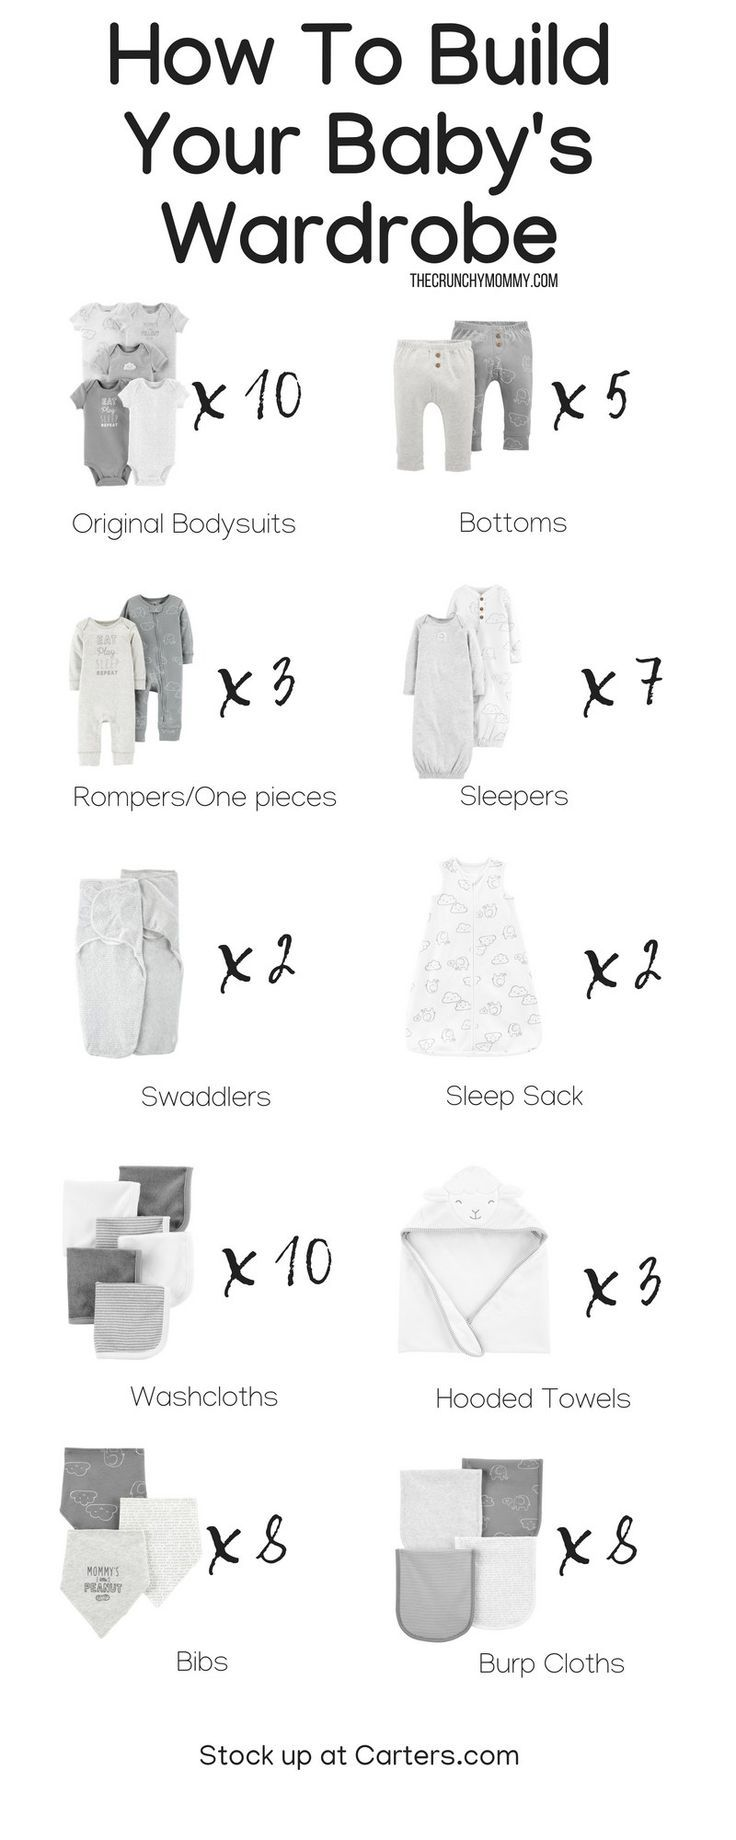 How To Build A Baby Boy's Wardrobe